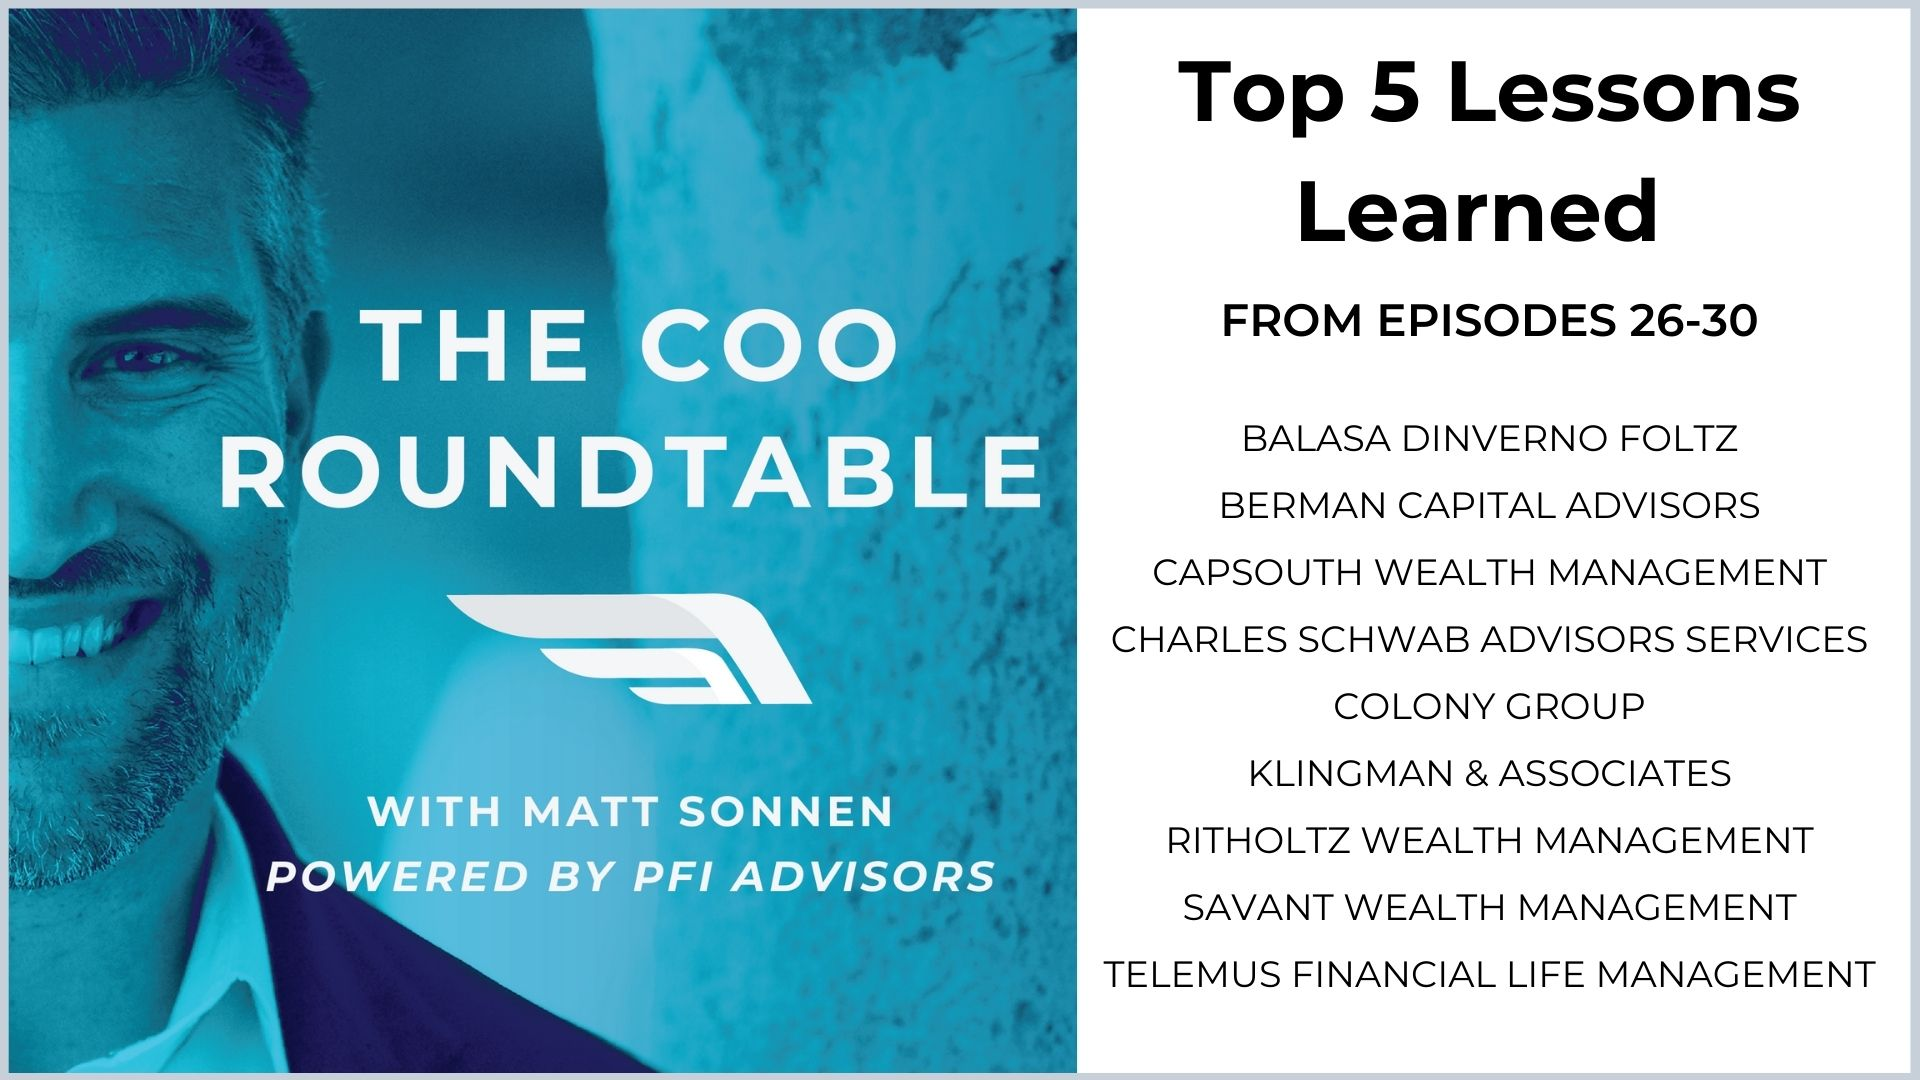 Top 5 Lessons Learned from Episodes  26-30 of The COO Roundtable